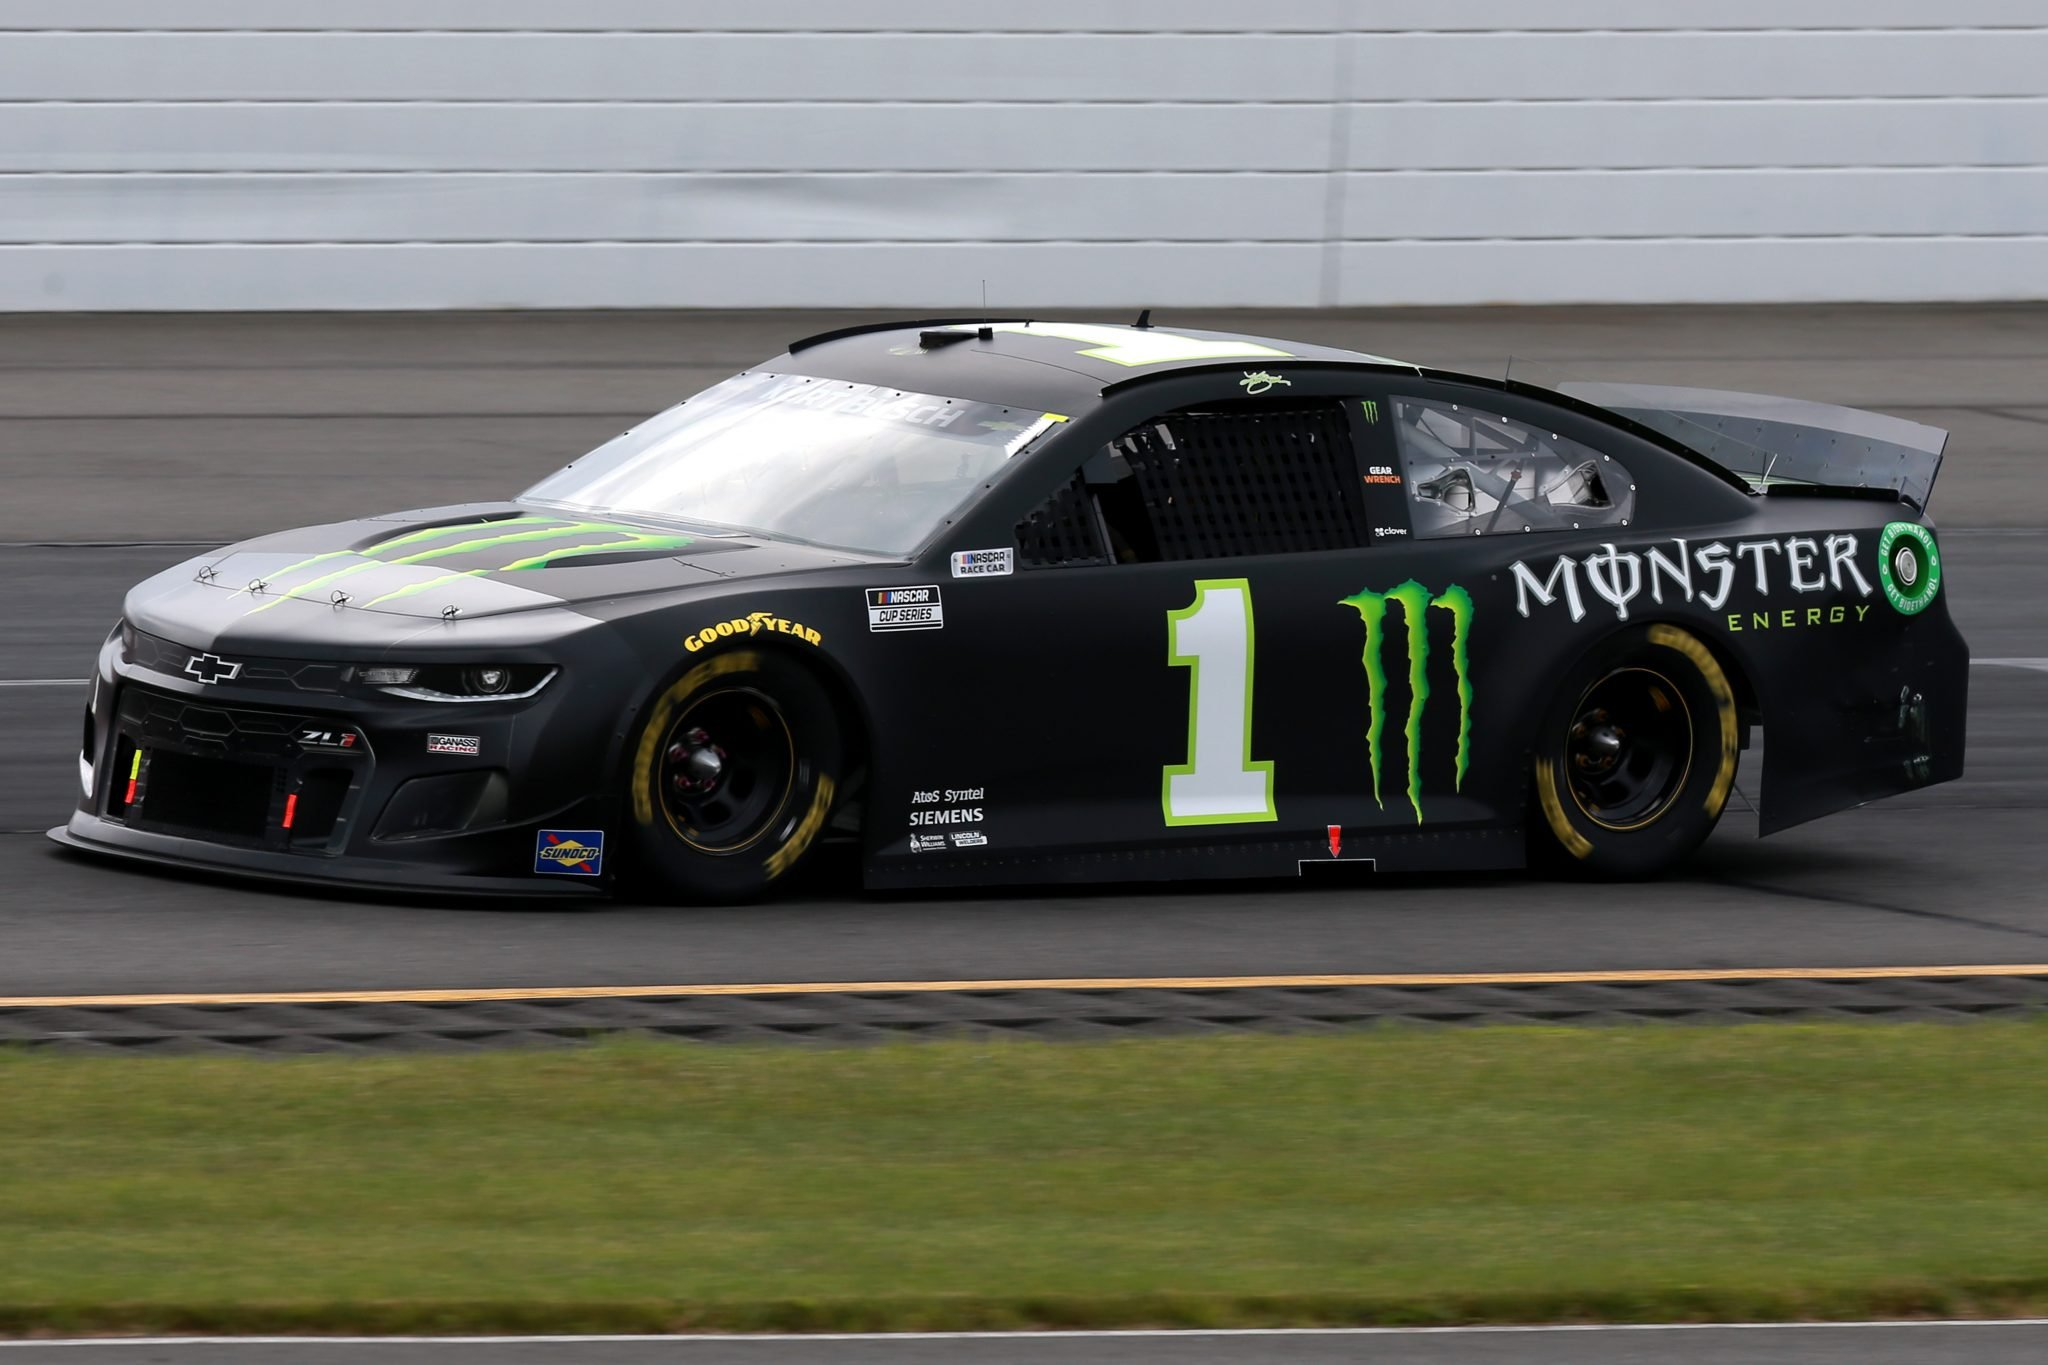 LONG POND, PENNSYLVANIA - JUNE 26: Kurt Busch, driver of the #1 Monster Energy Chevrolet, drives during the NASCAR Cup Series Pocono Organics CBD 325 at Pocono Raceway on June 26, 2021 in Long Pond, Pennsylvania. (Photo by Sean Gardner/Getty Images) | Getty Images